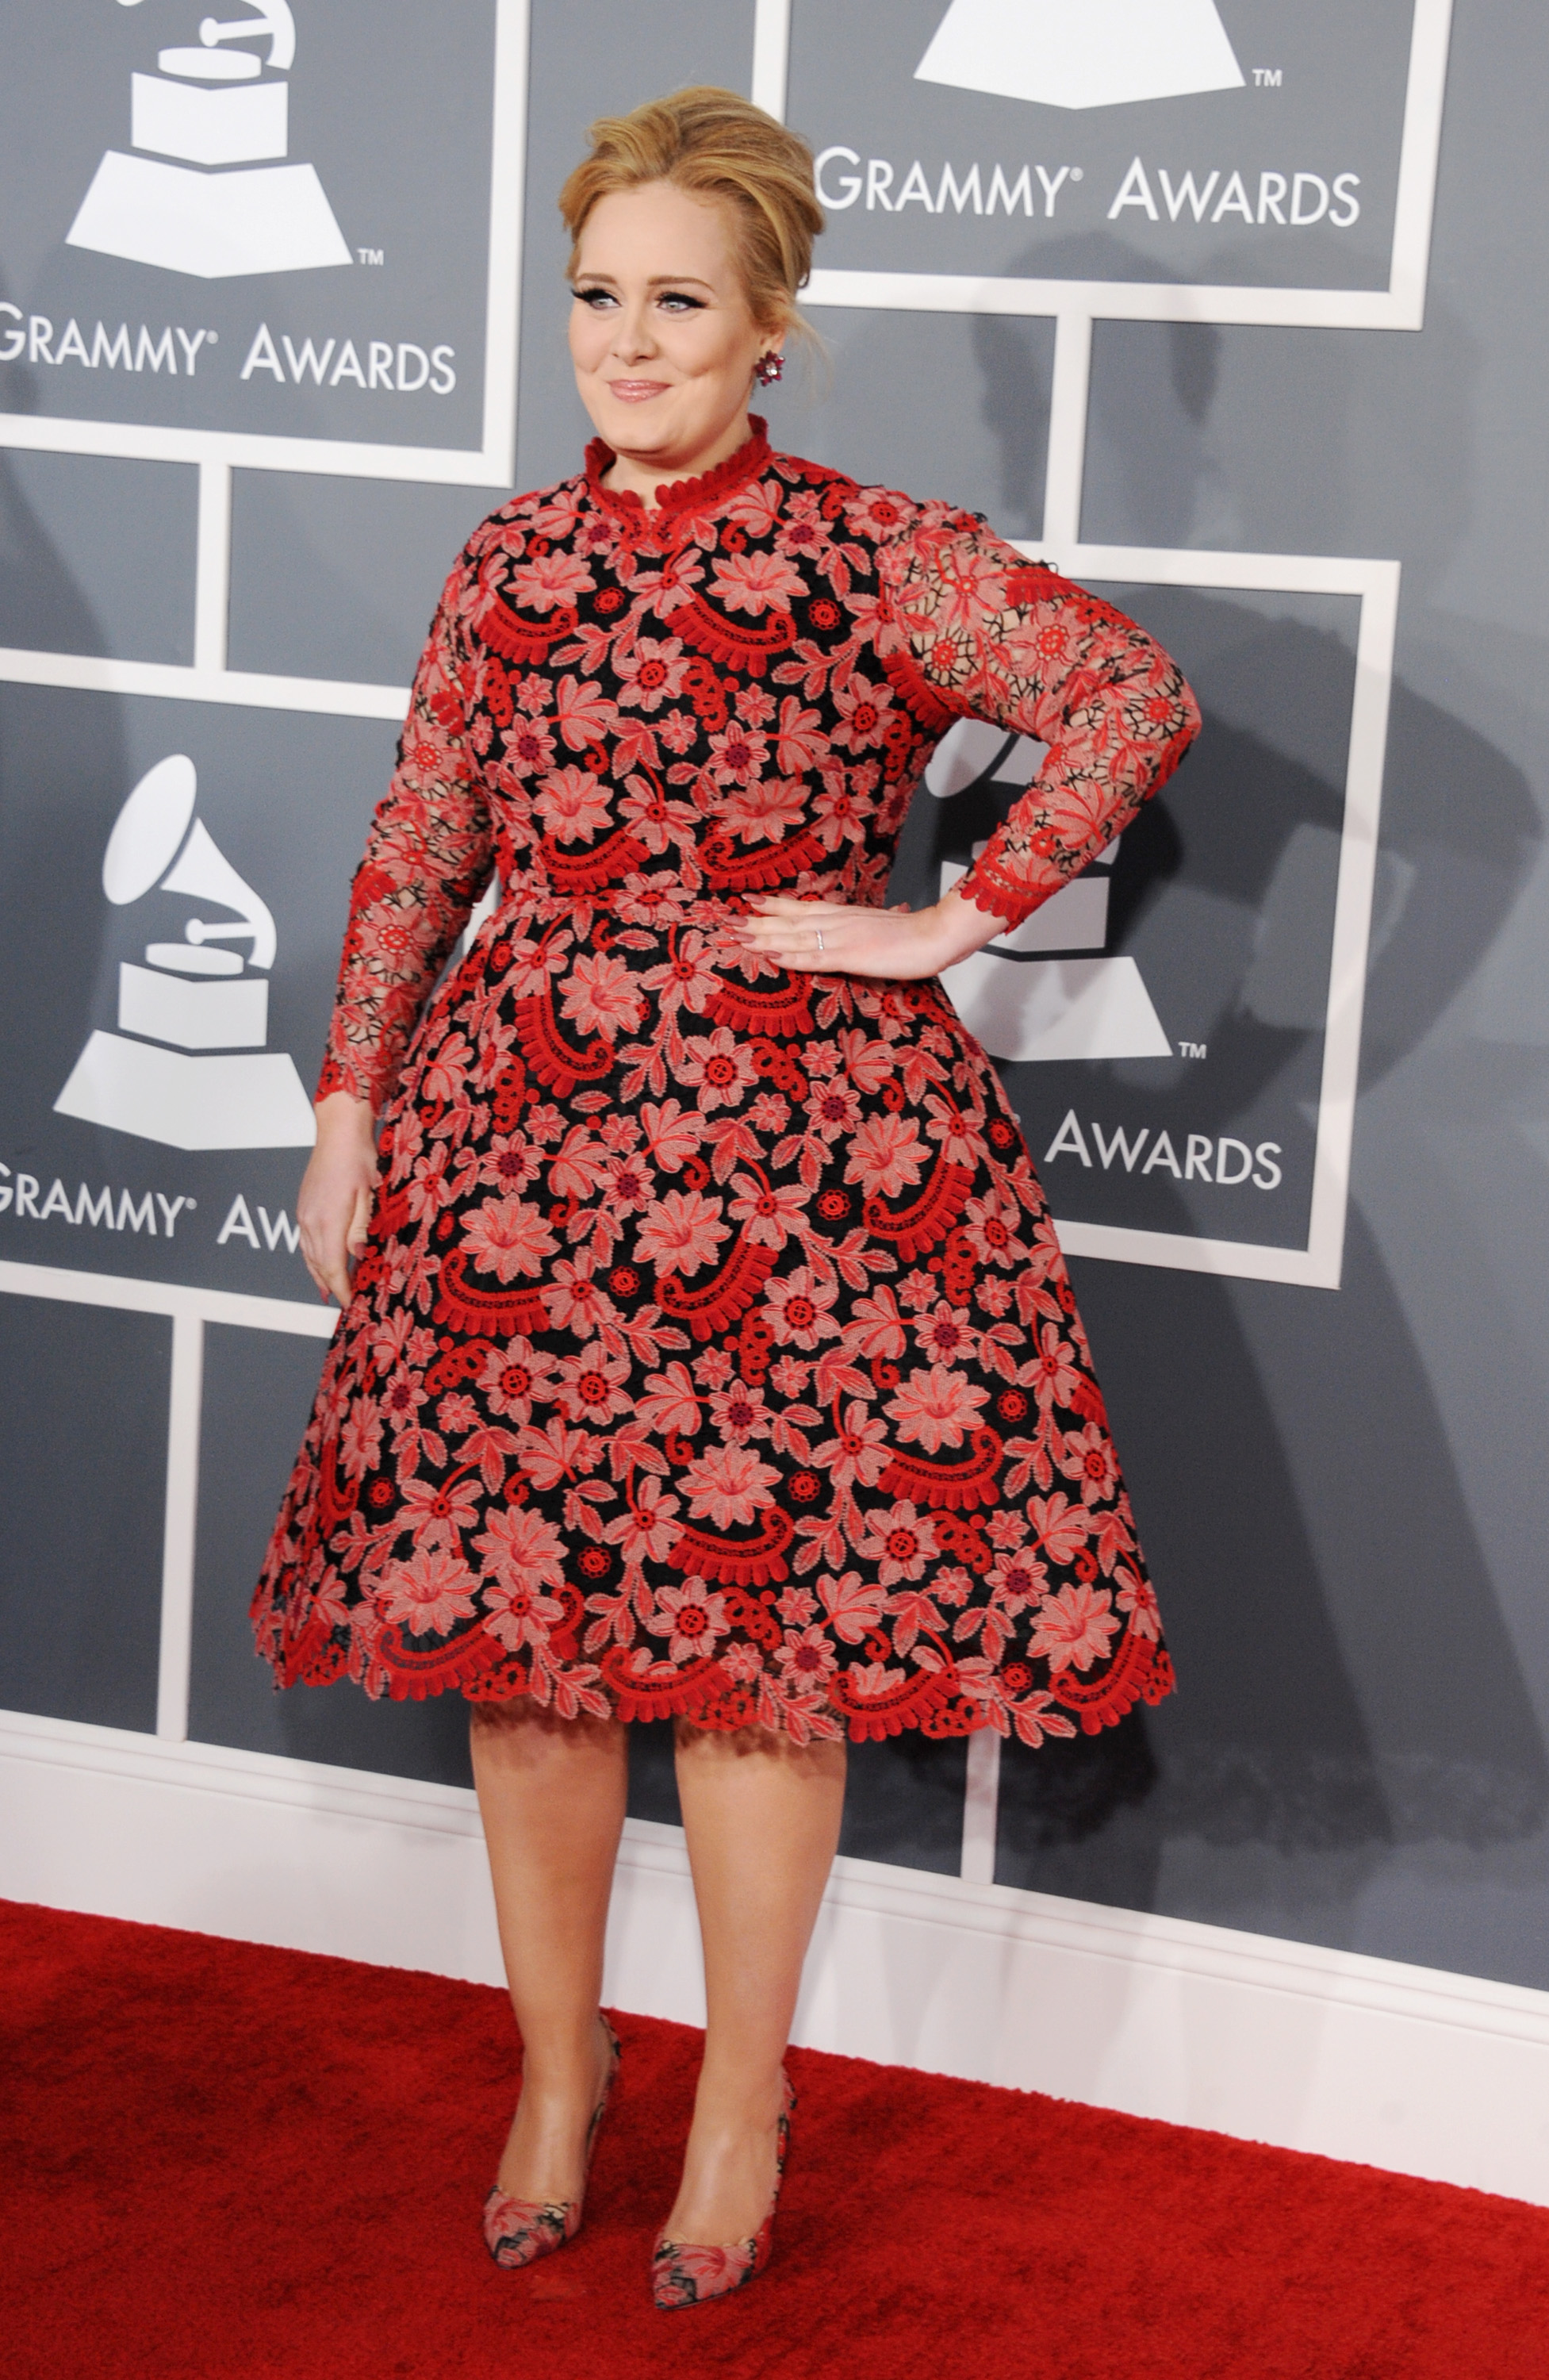 Adele posed on the Grammys red carpet in a Valentino dress.